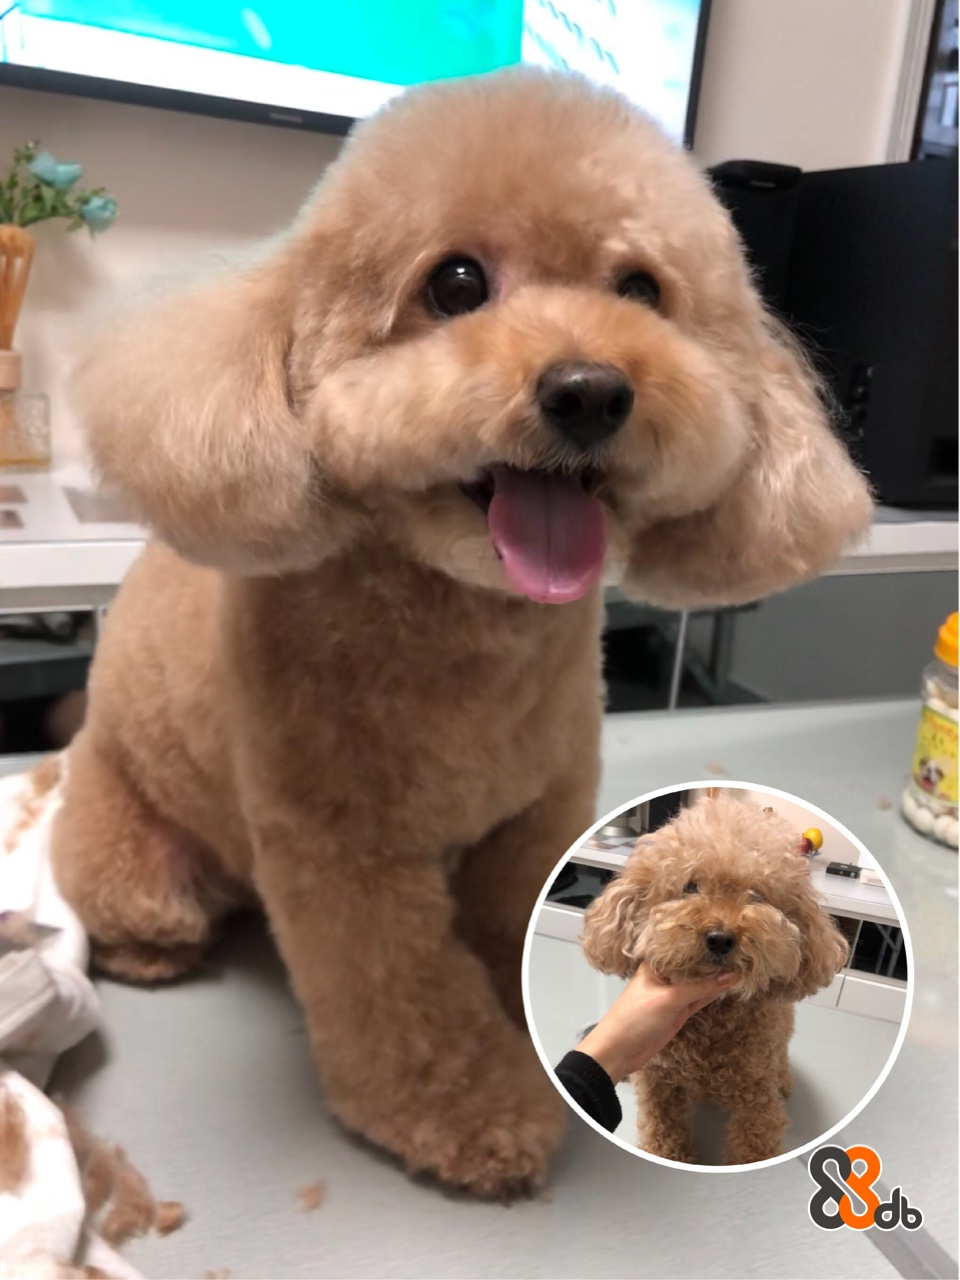 oric 身前後  dog like mammal,dog,dog breed,stuffed toy,puppy